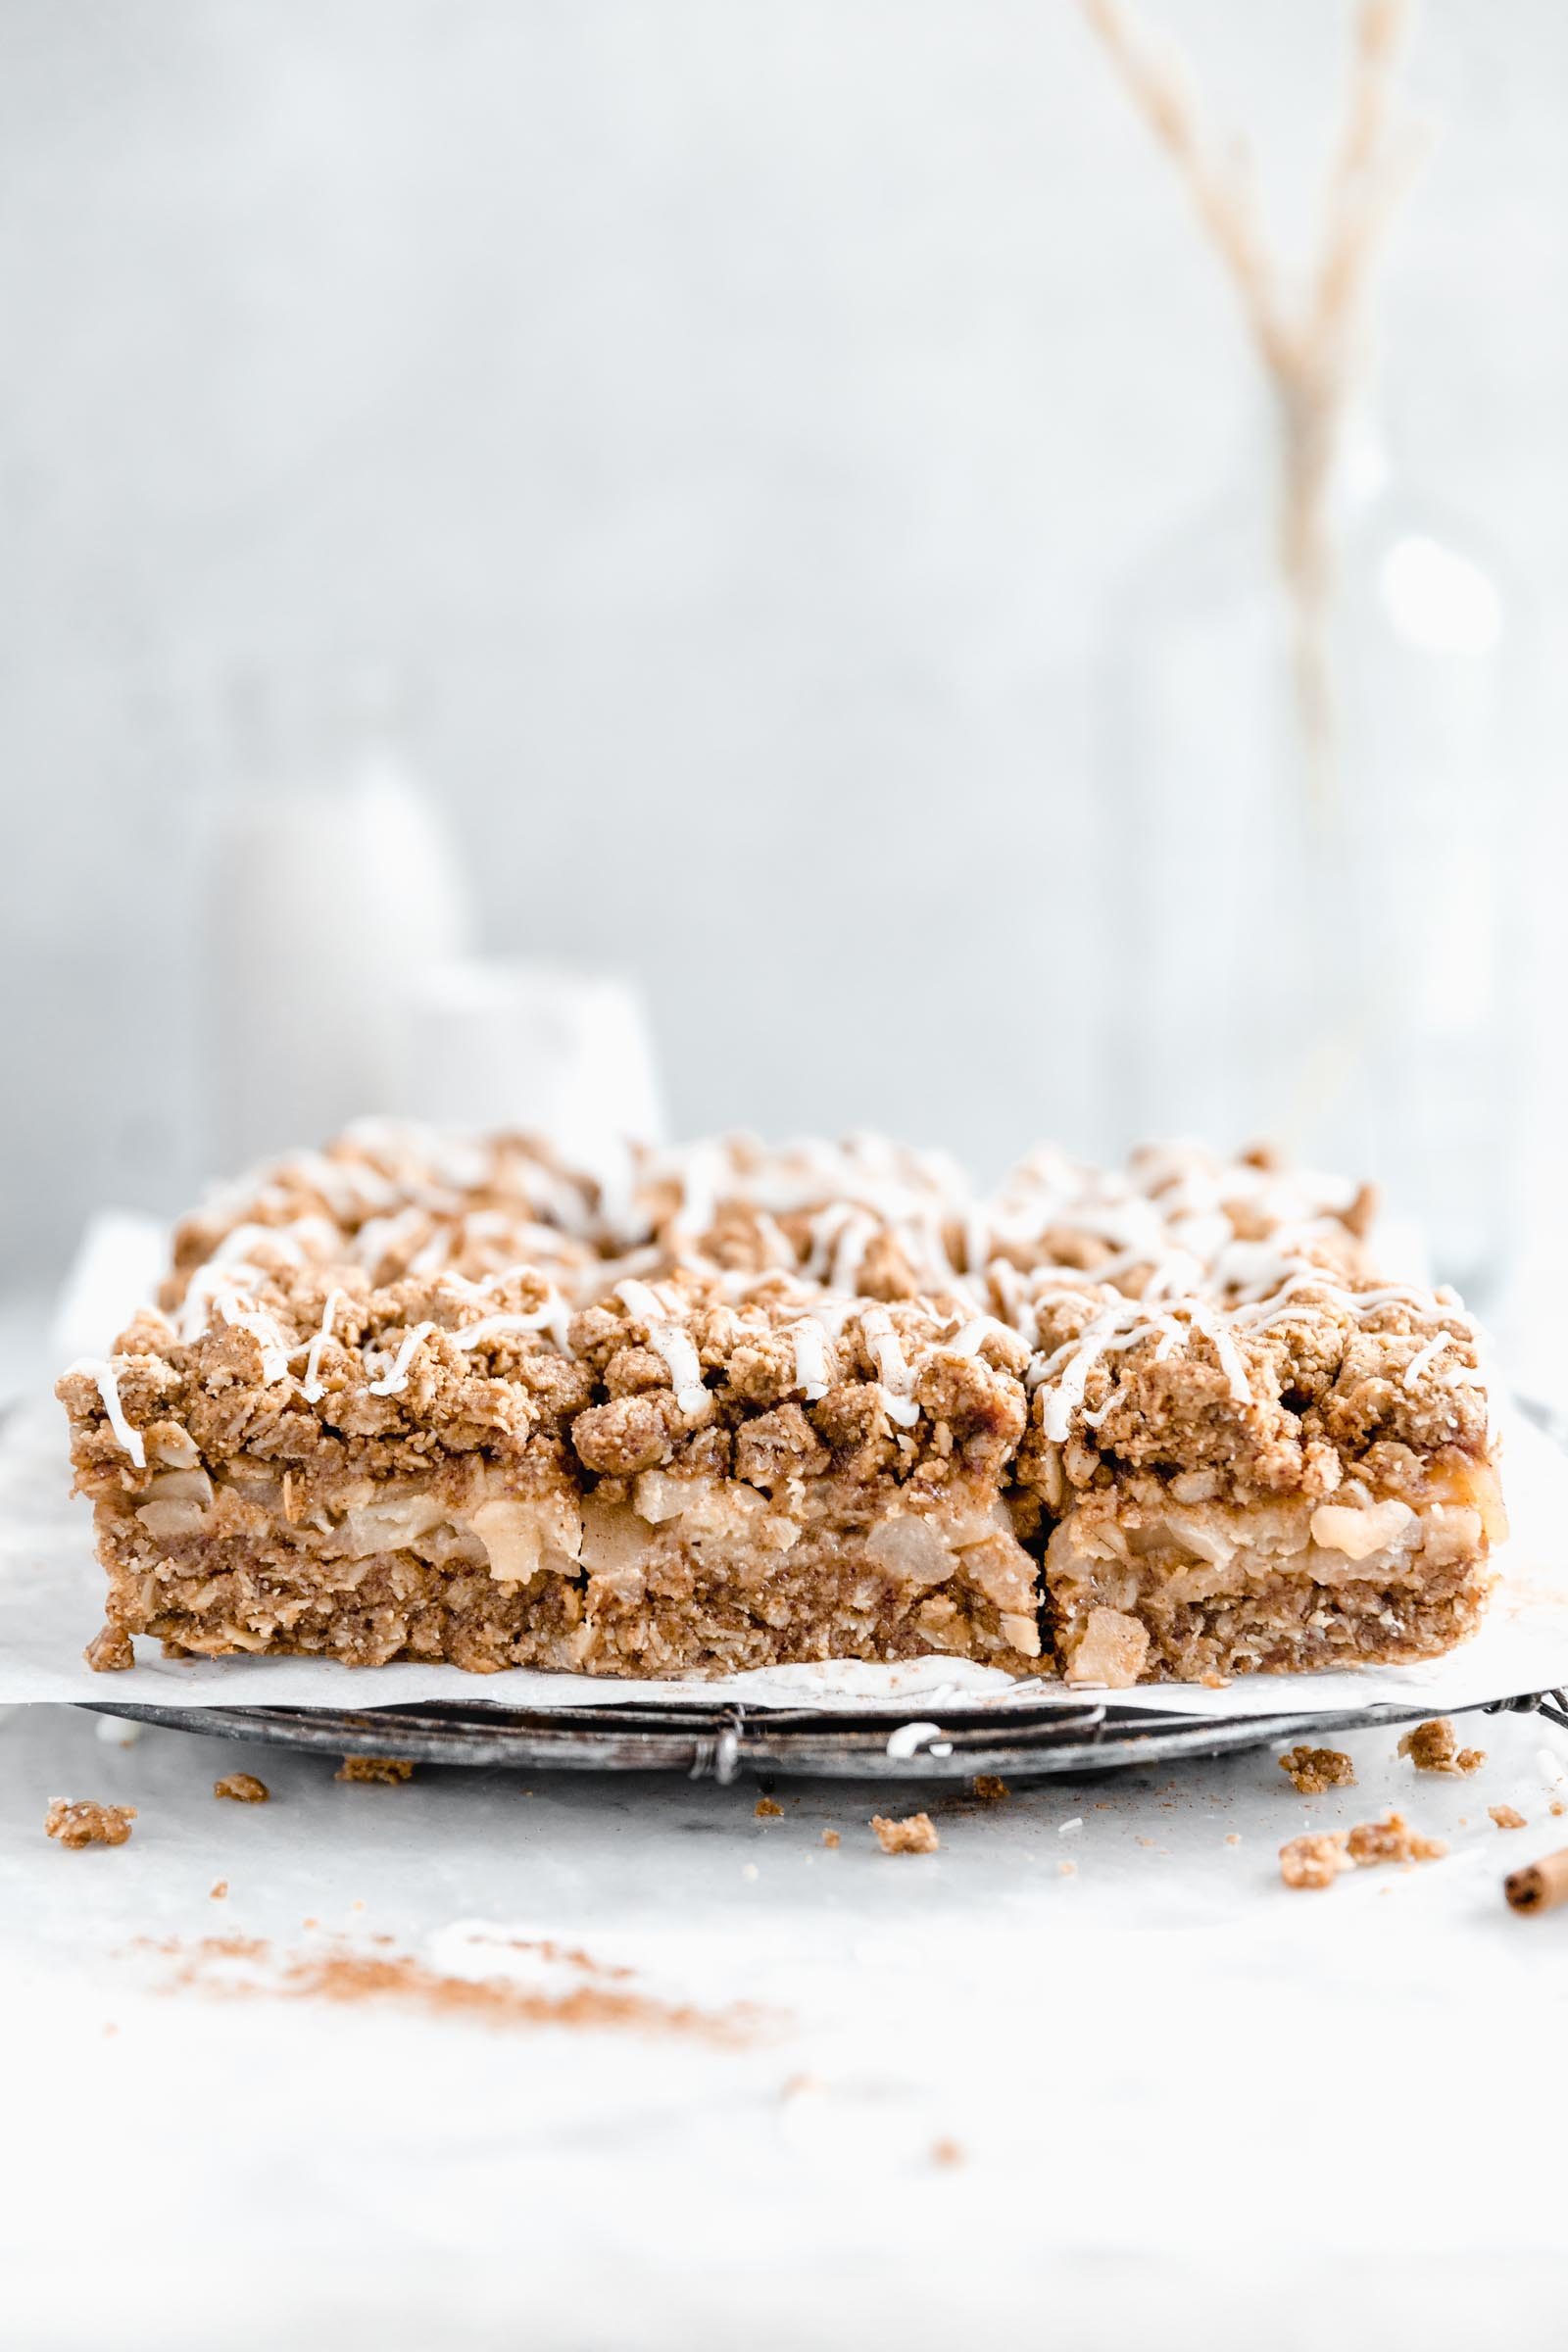 Cross section of healthy apple crumb bars